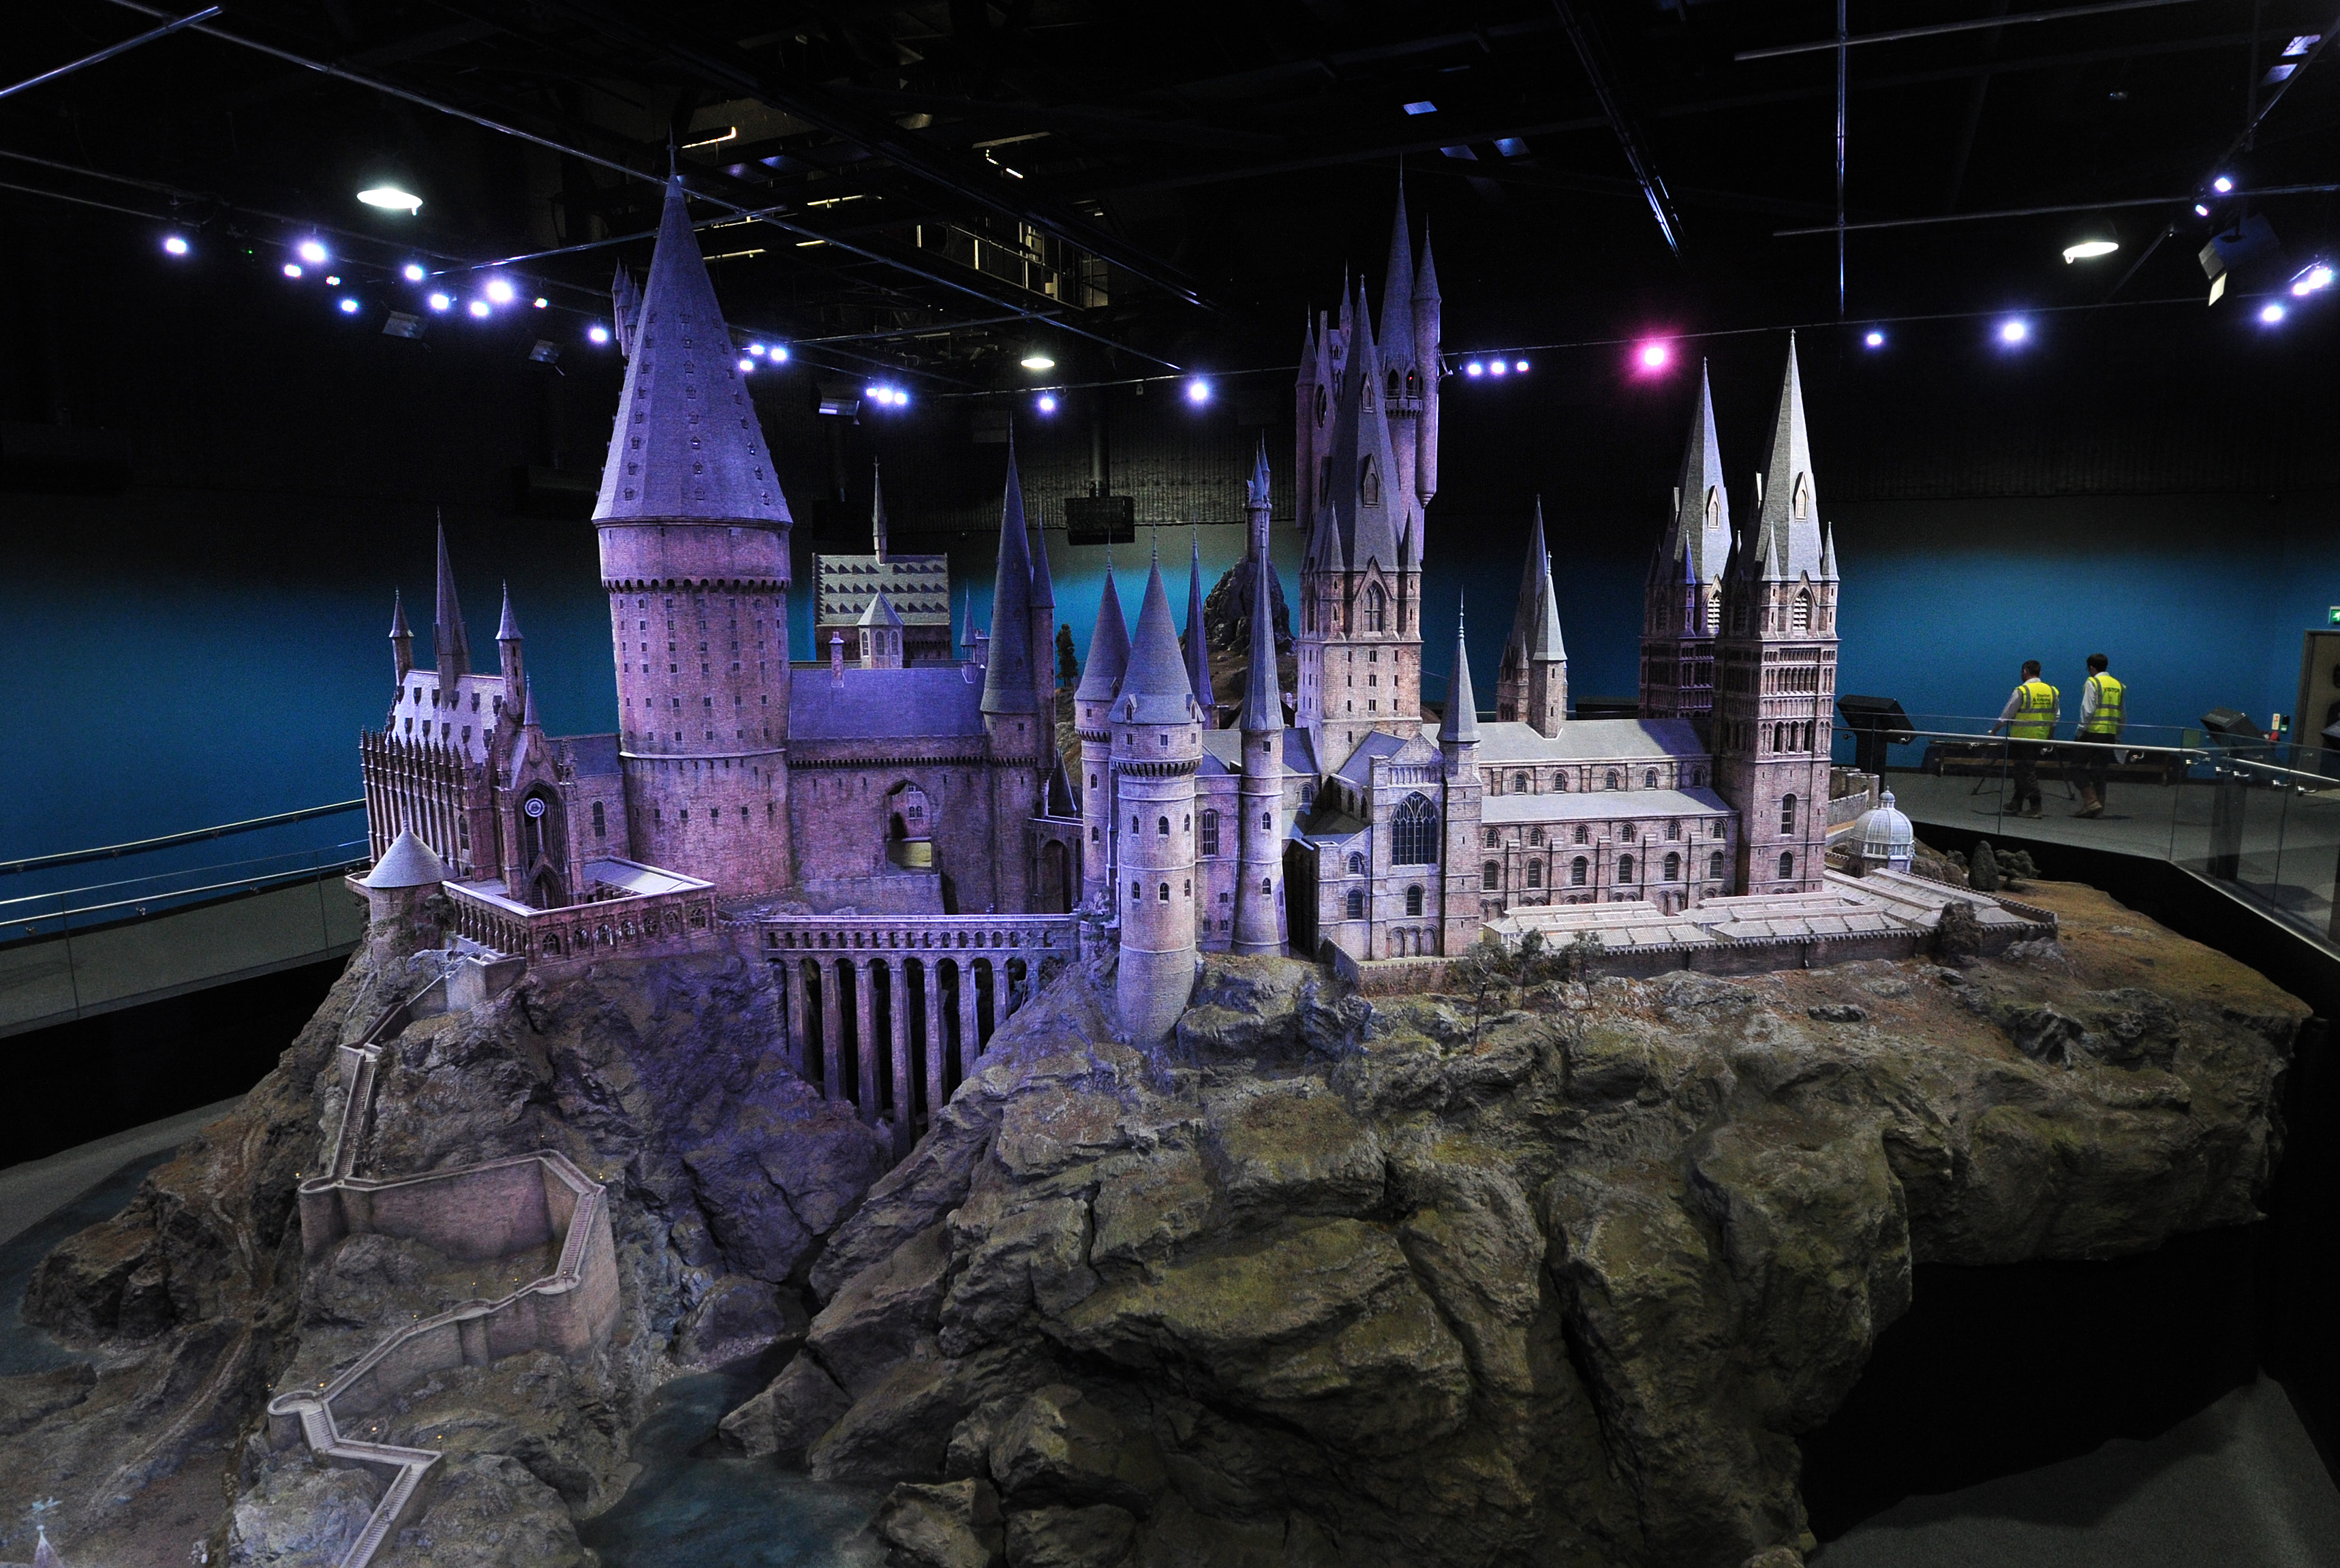 A general view shows a scale model of Hogwarts School of Witchcraft and Wizardry during a preview of the Warner Bros Harry Potter studio tour  The Making of Harry Potter  in north London on March 26, 2012.